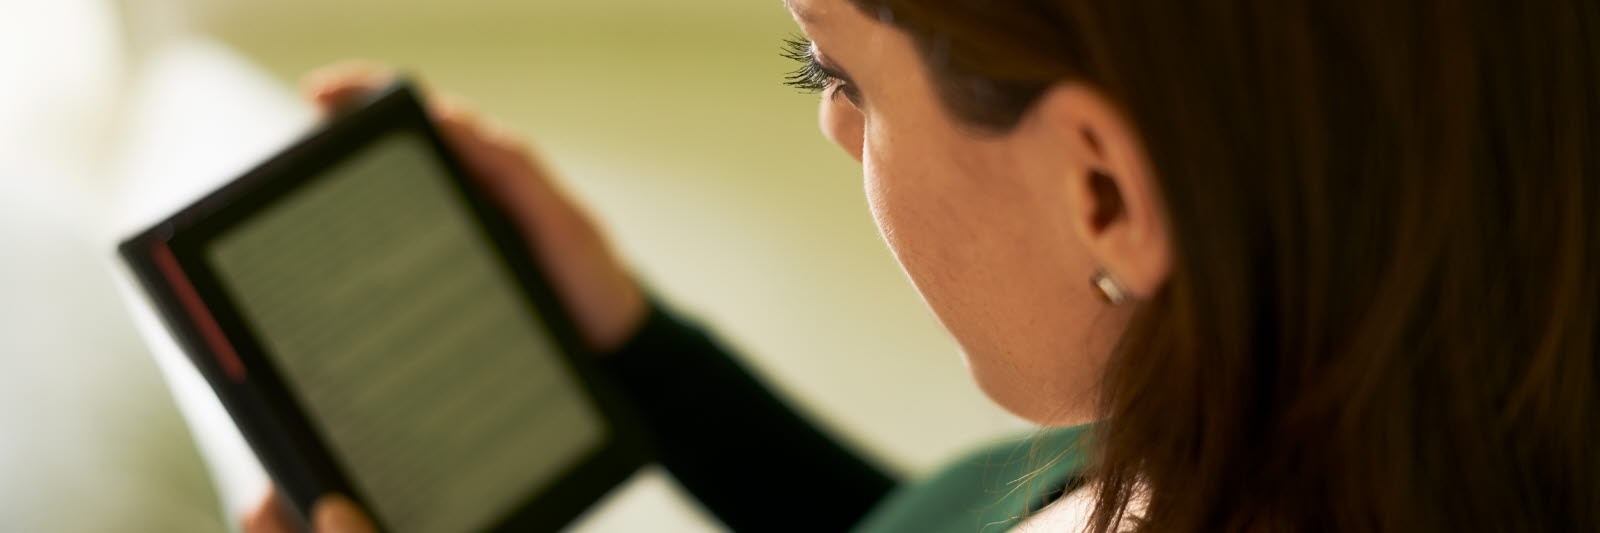 woman reading on a tablet Stiftung Lesen user case